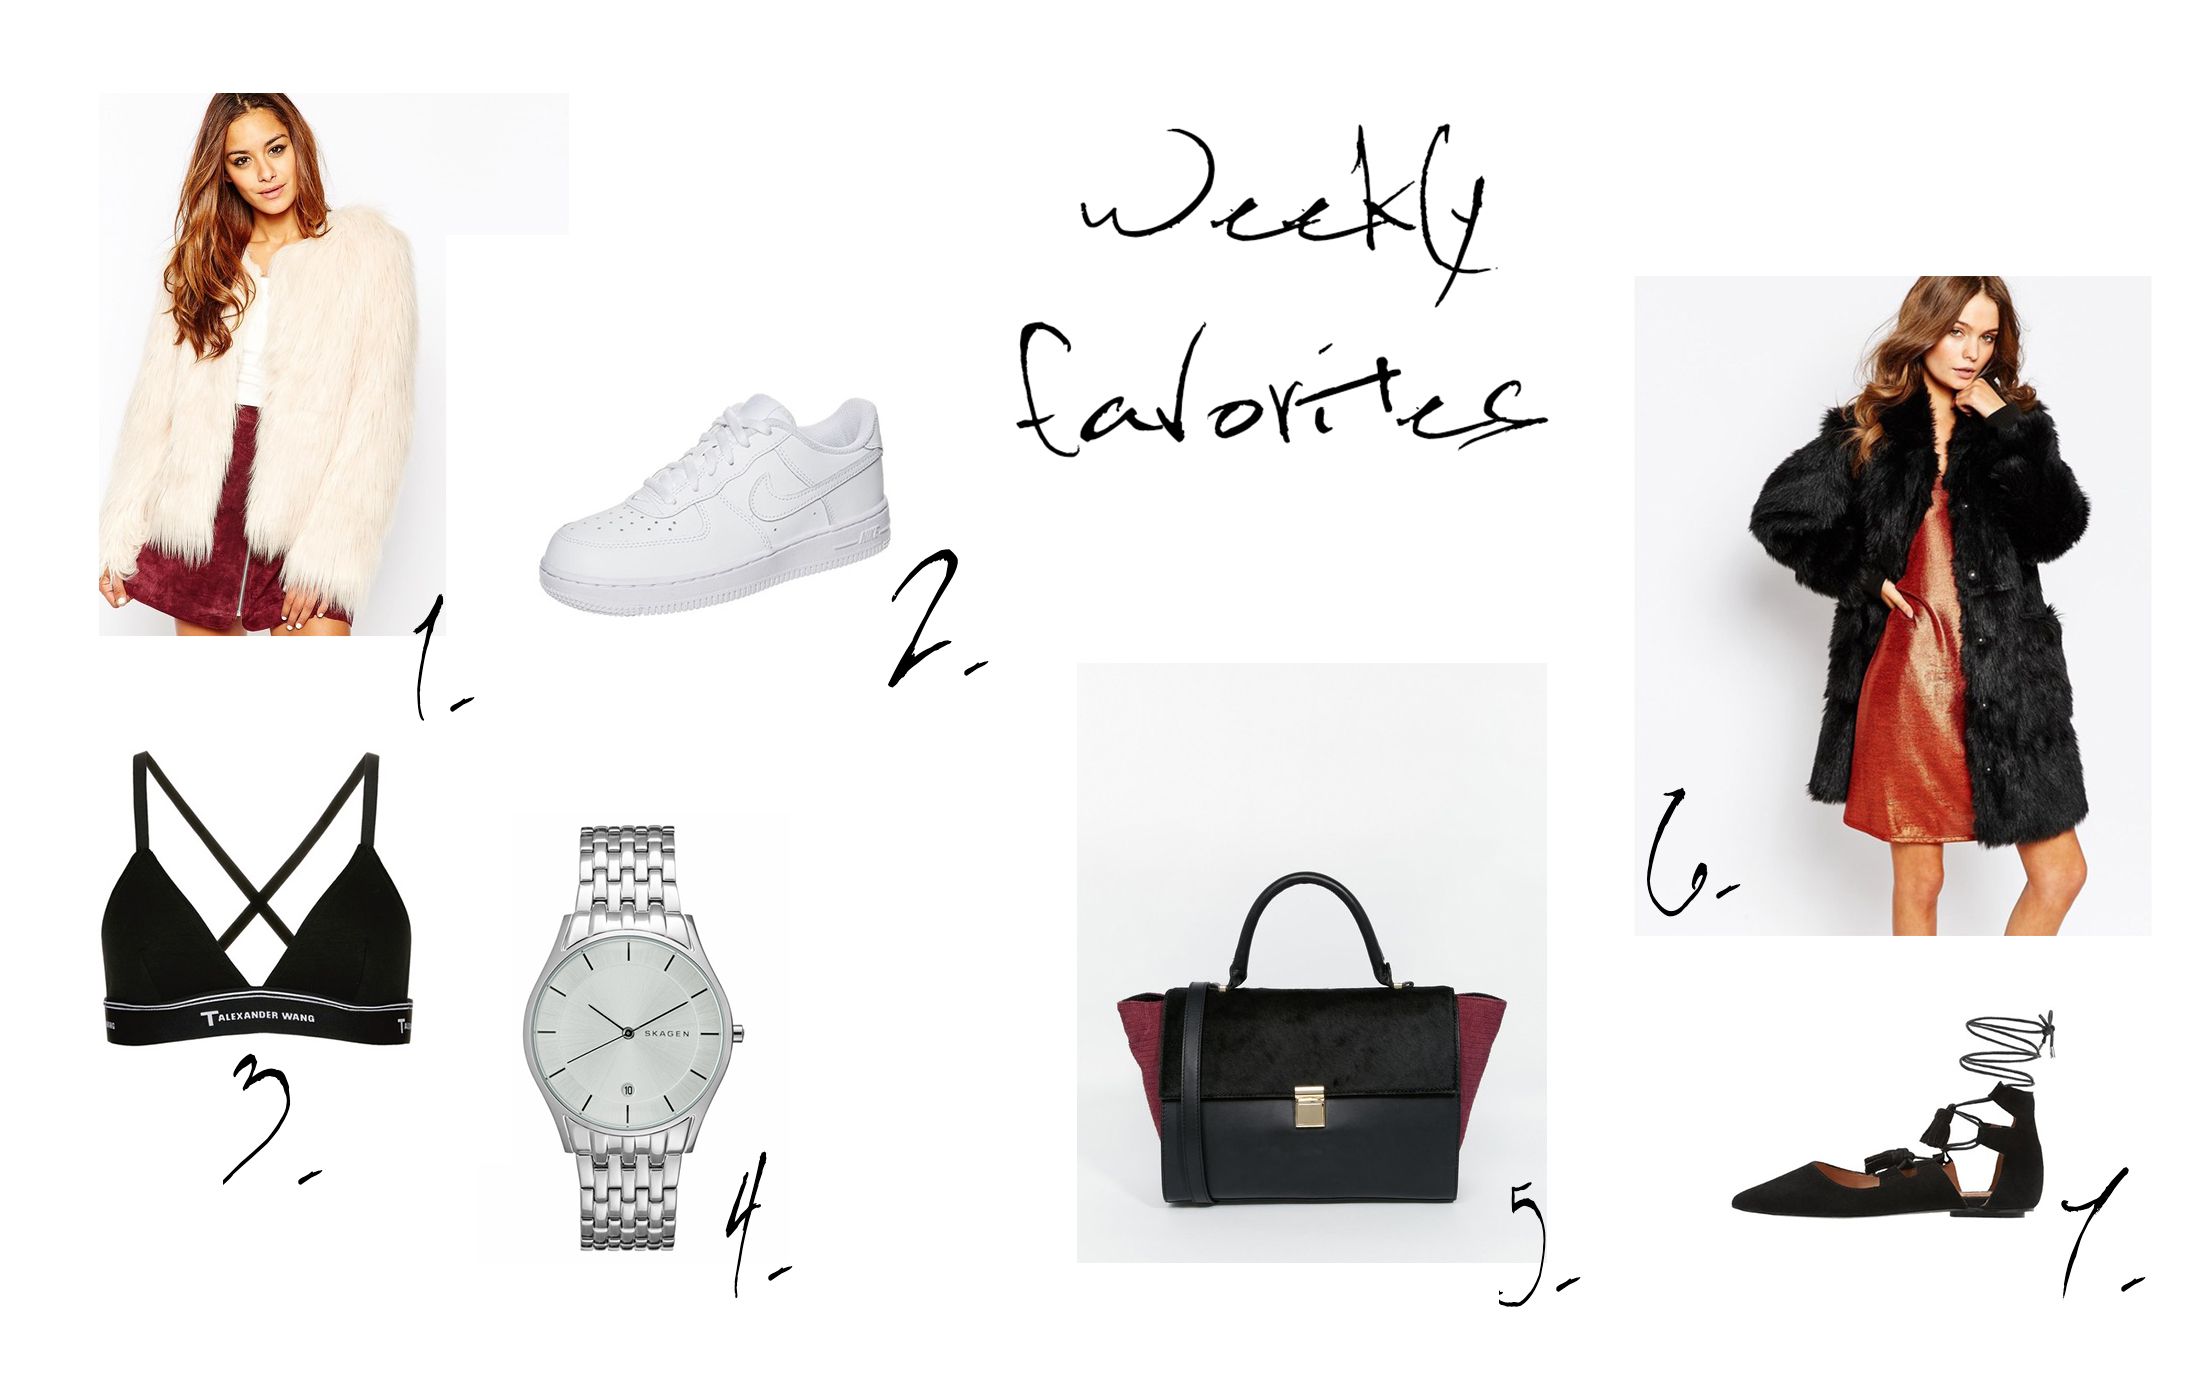 WEEKLY-FAVORITES-SALE-REDUZIERT-OUTFITS-LOOKS-STYLE-ASOS-NIKE-FAKEFUR-FLATS-BLOGGER-FASHIONBLOGGER-BEAUTYBLOGGER-MODEBLOGGER-STYLEBLOGGER-MUNICH-MUENCHEN-FASHIONBLOG-1